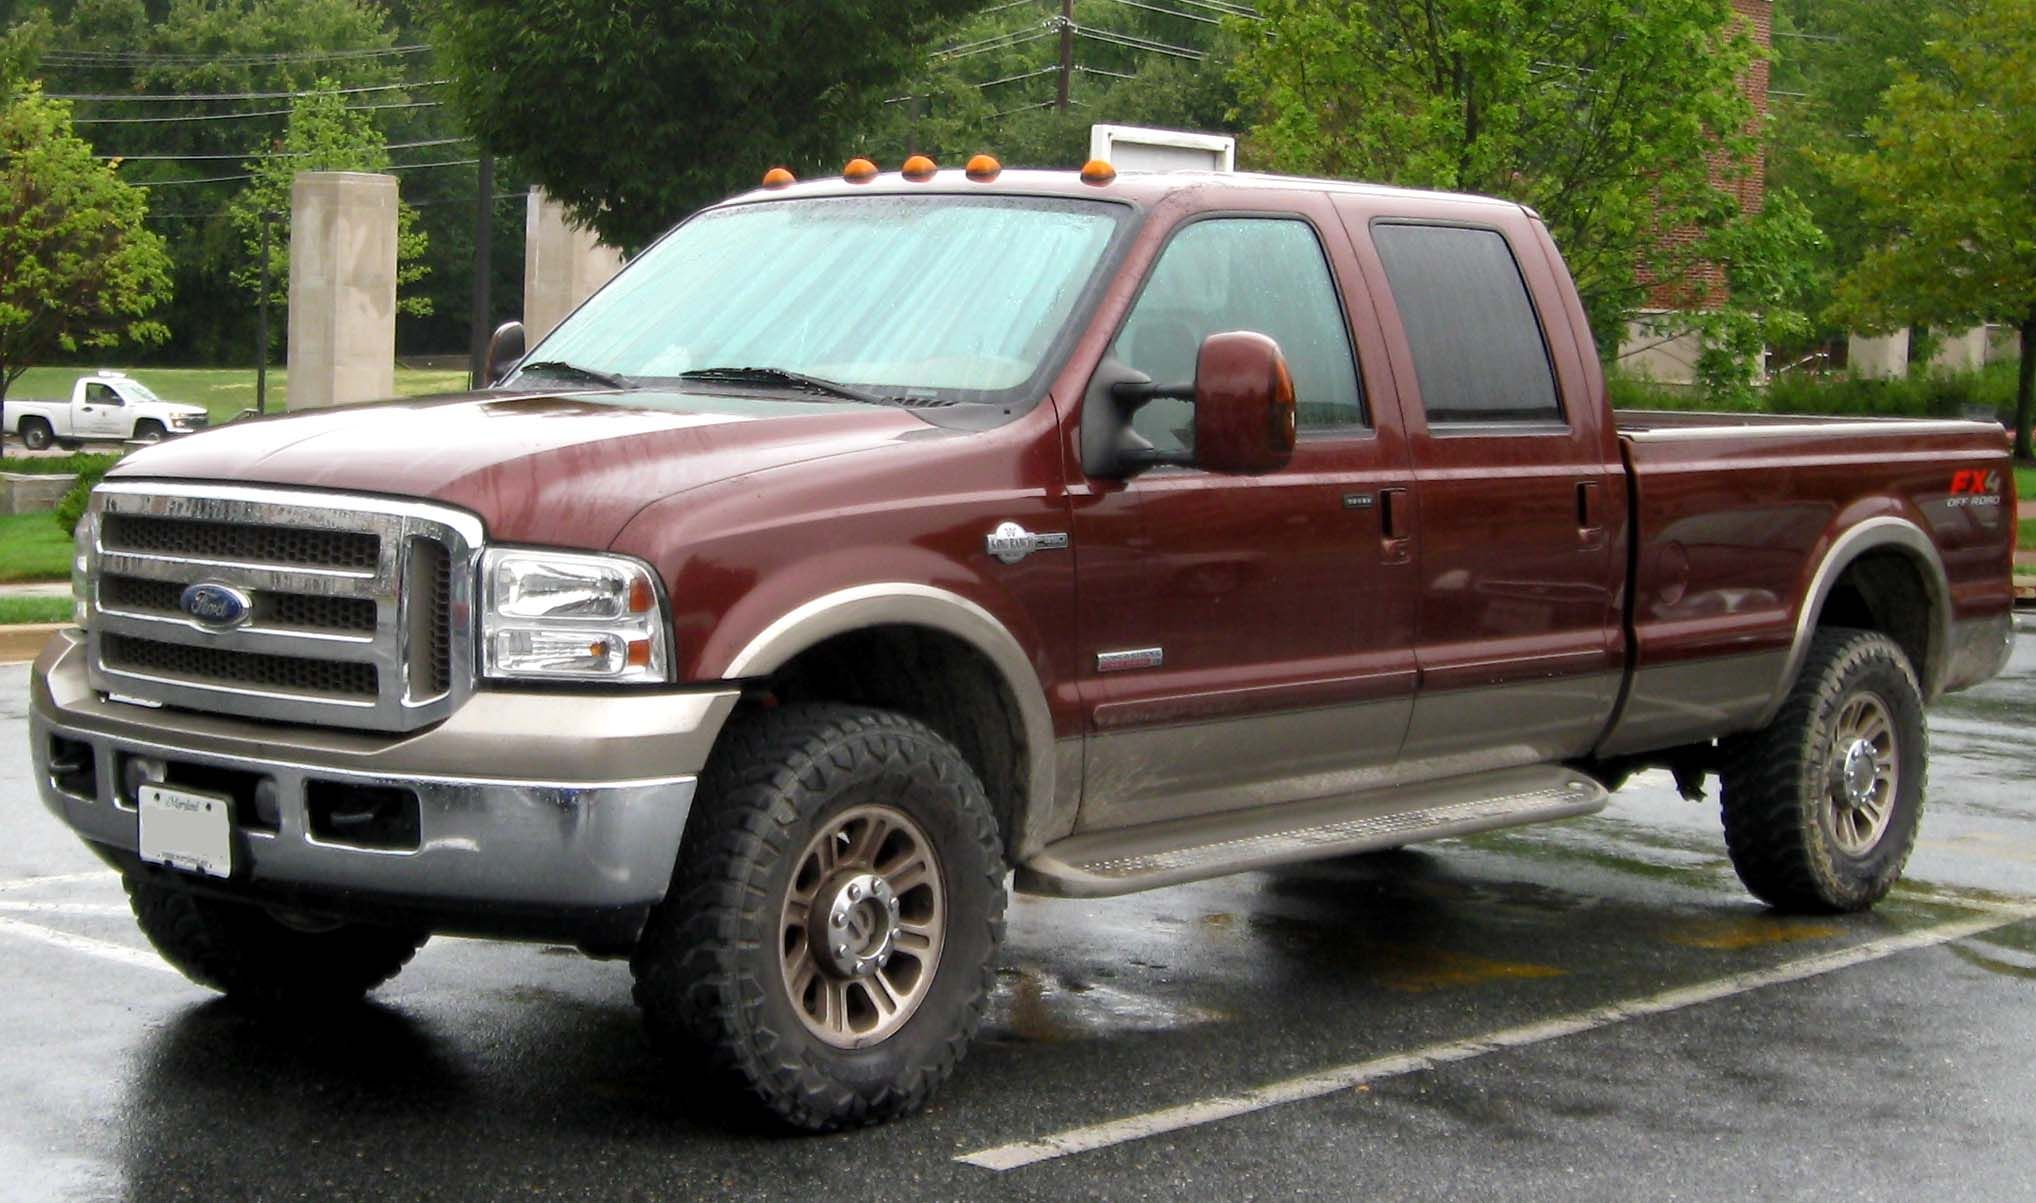 2002 ford f250 v10 super cab mine was a teal blue with tinted windows this thing could pull a small town if you had a good enough chain 9mpg  [ 2036 x 1203 Pixel ]